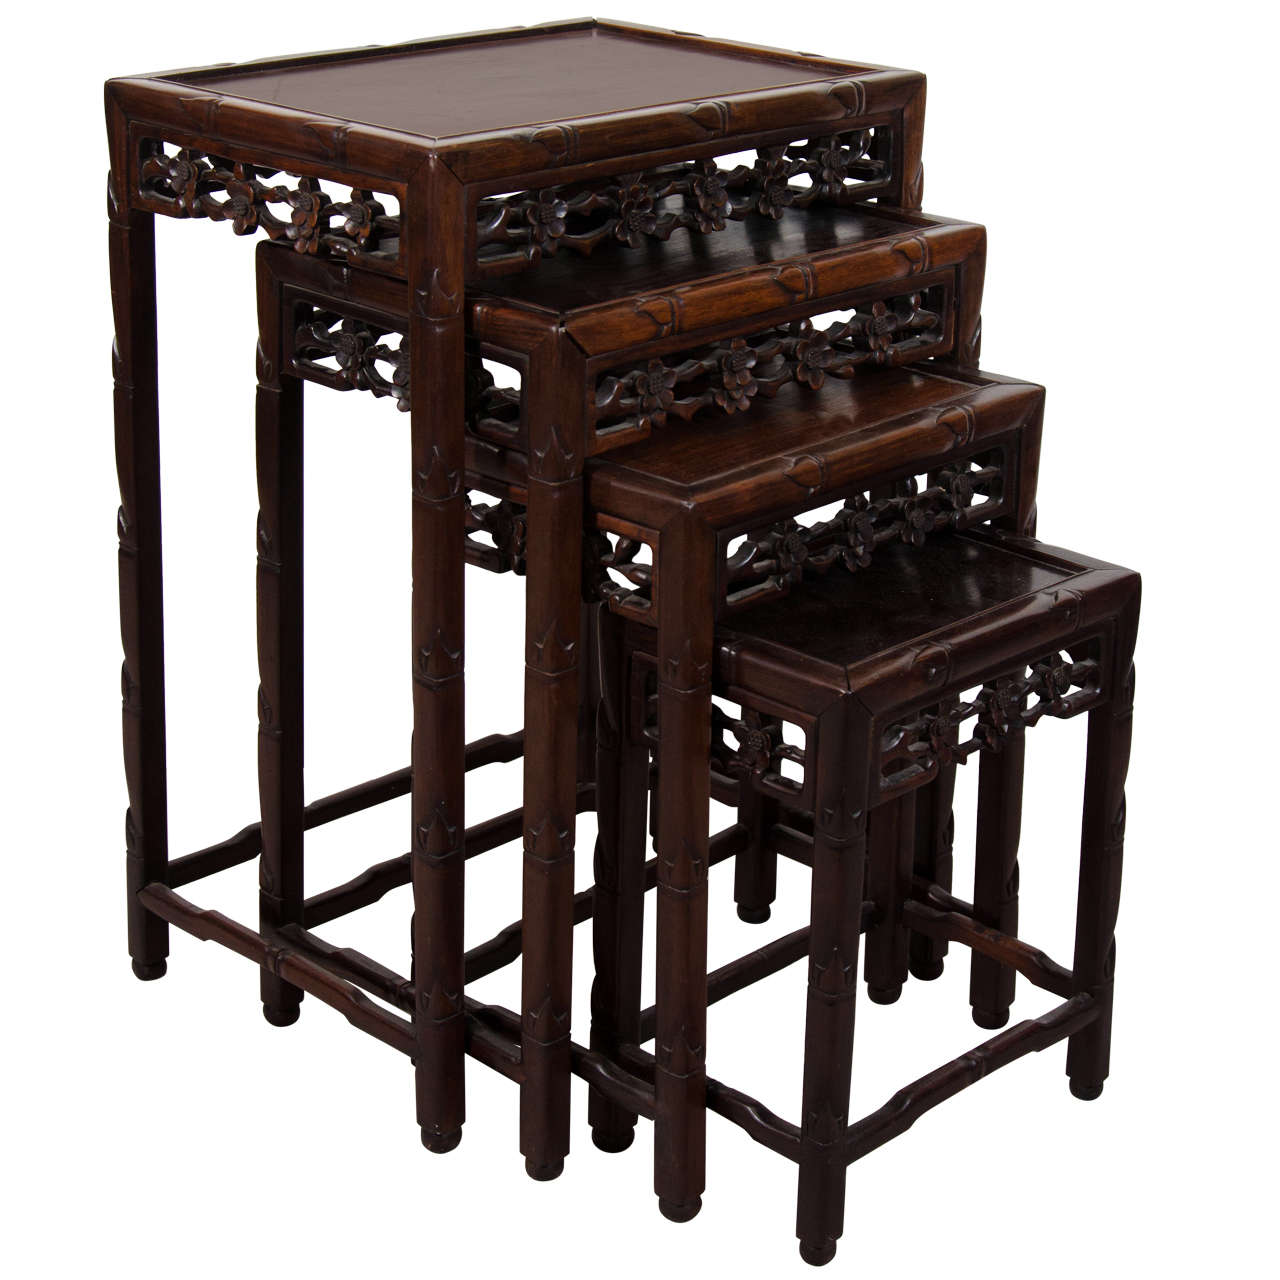 Beau Early 20th Century Set Of Chinese Rosewood Nesting Tables For Sale